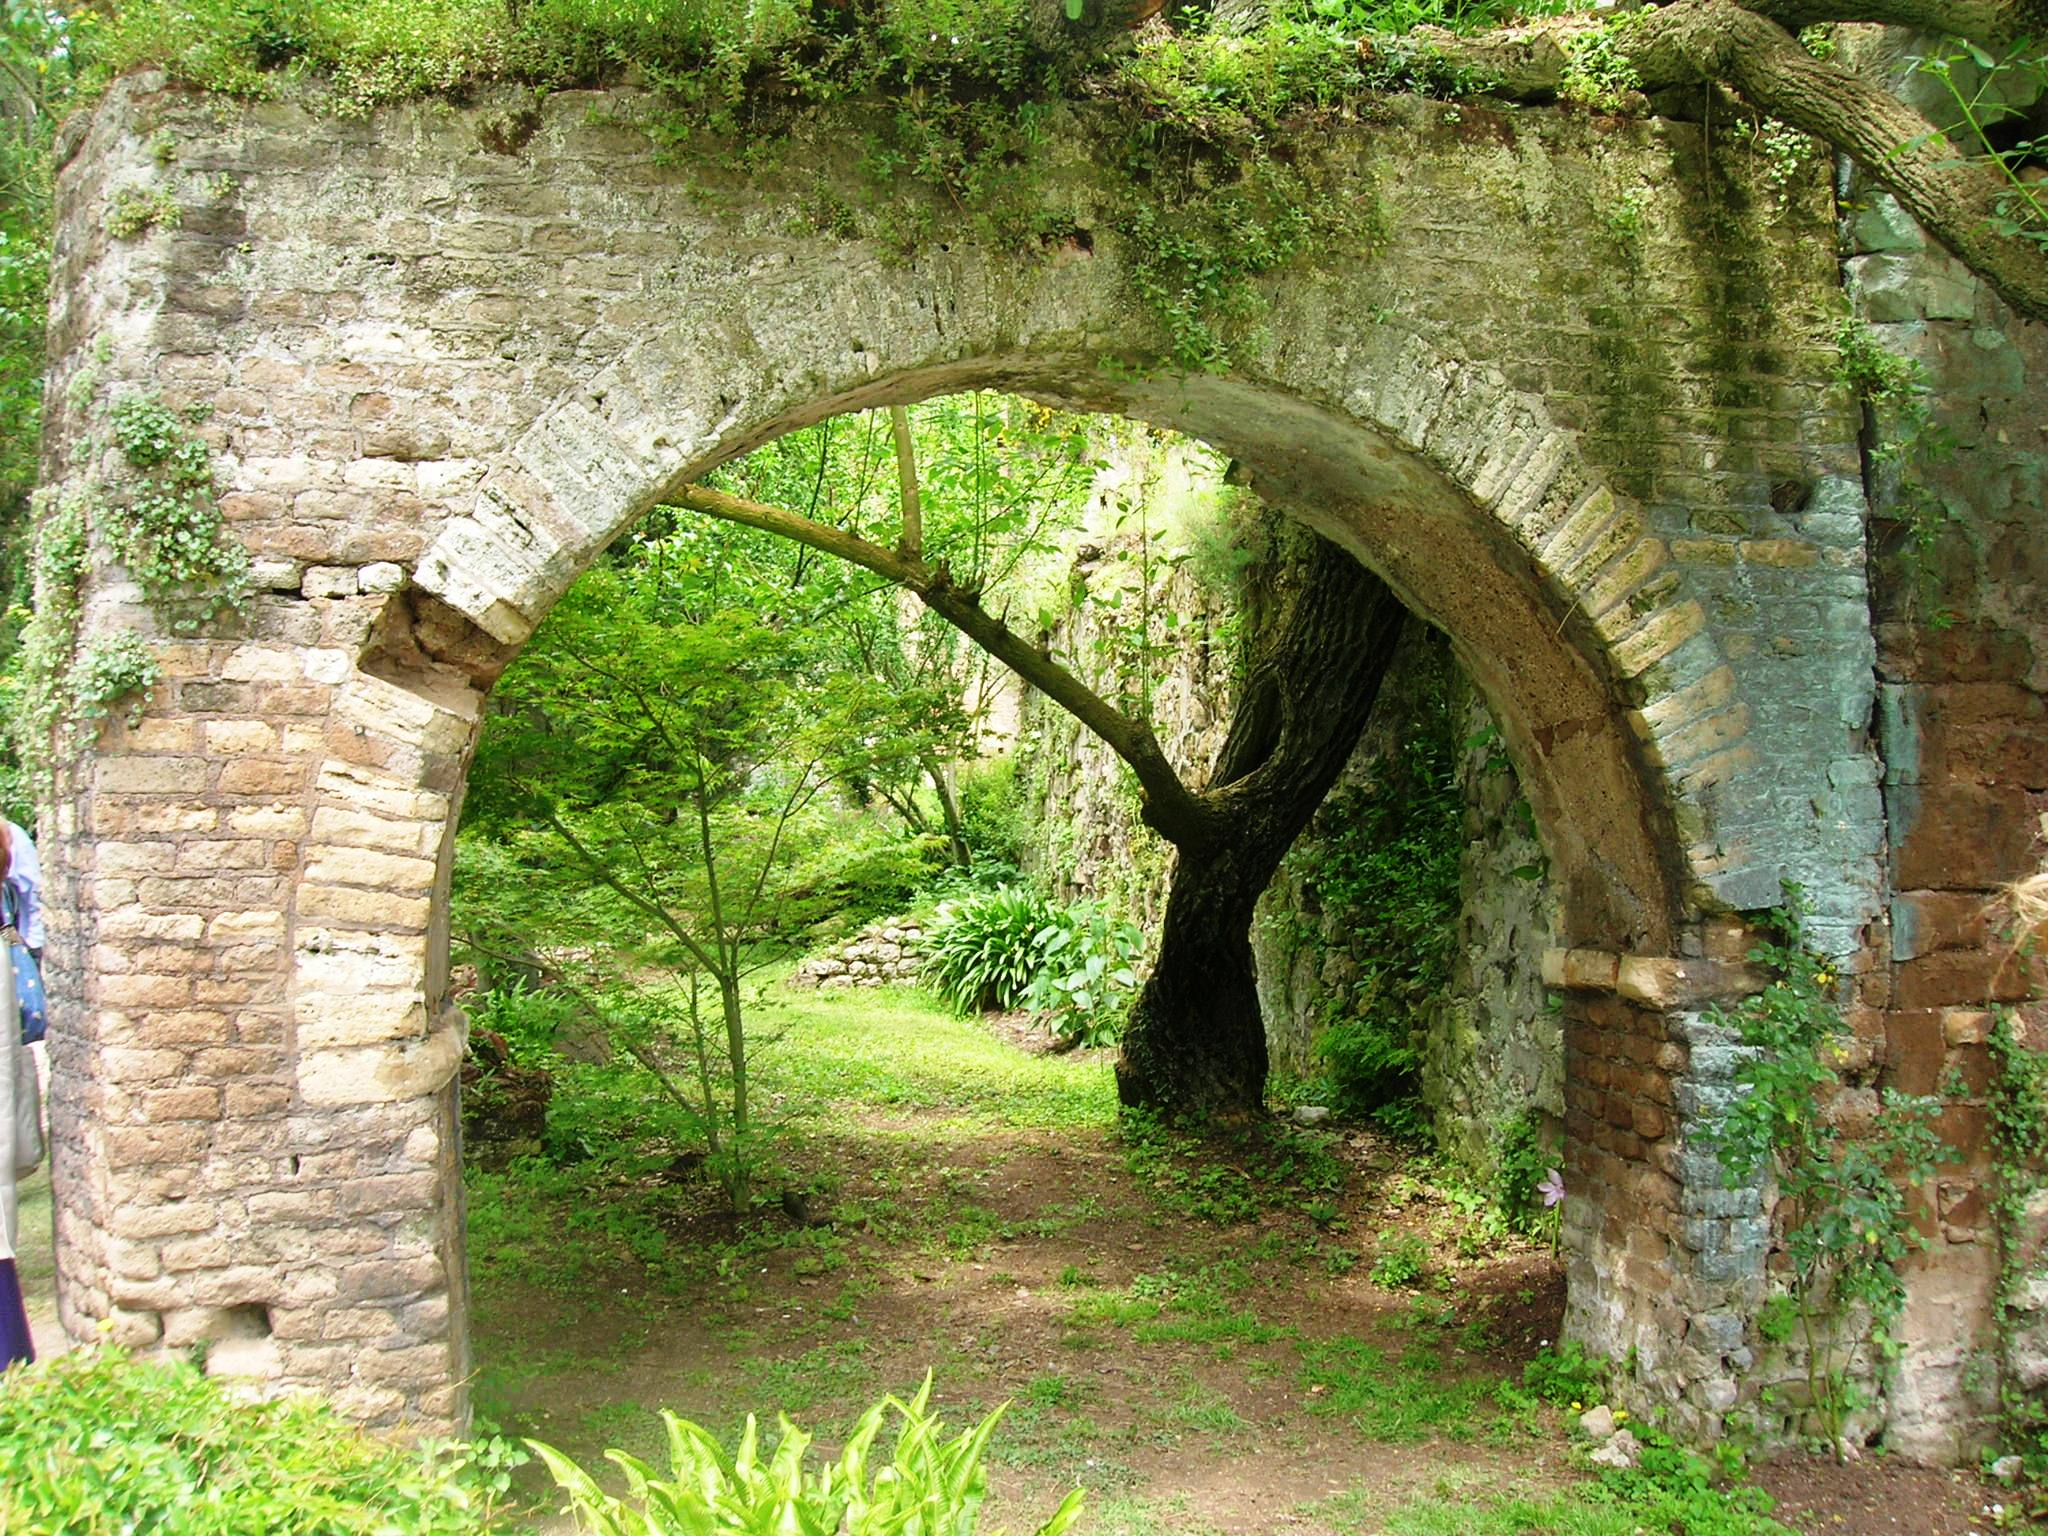 1000 images about nature garden of ninfa on pinterest for Giardino di ninfa italy